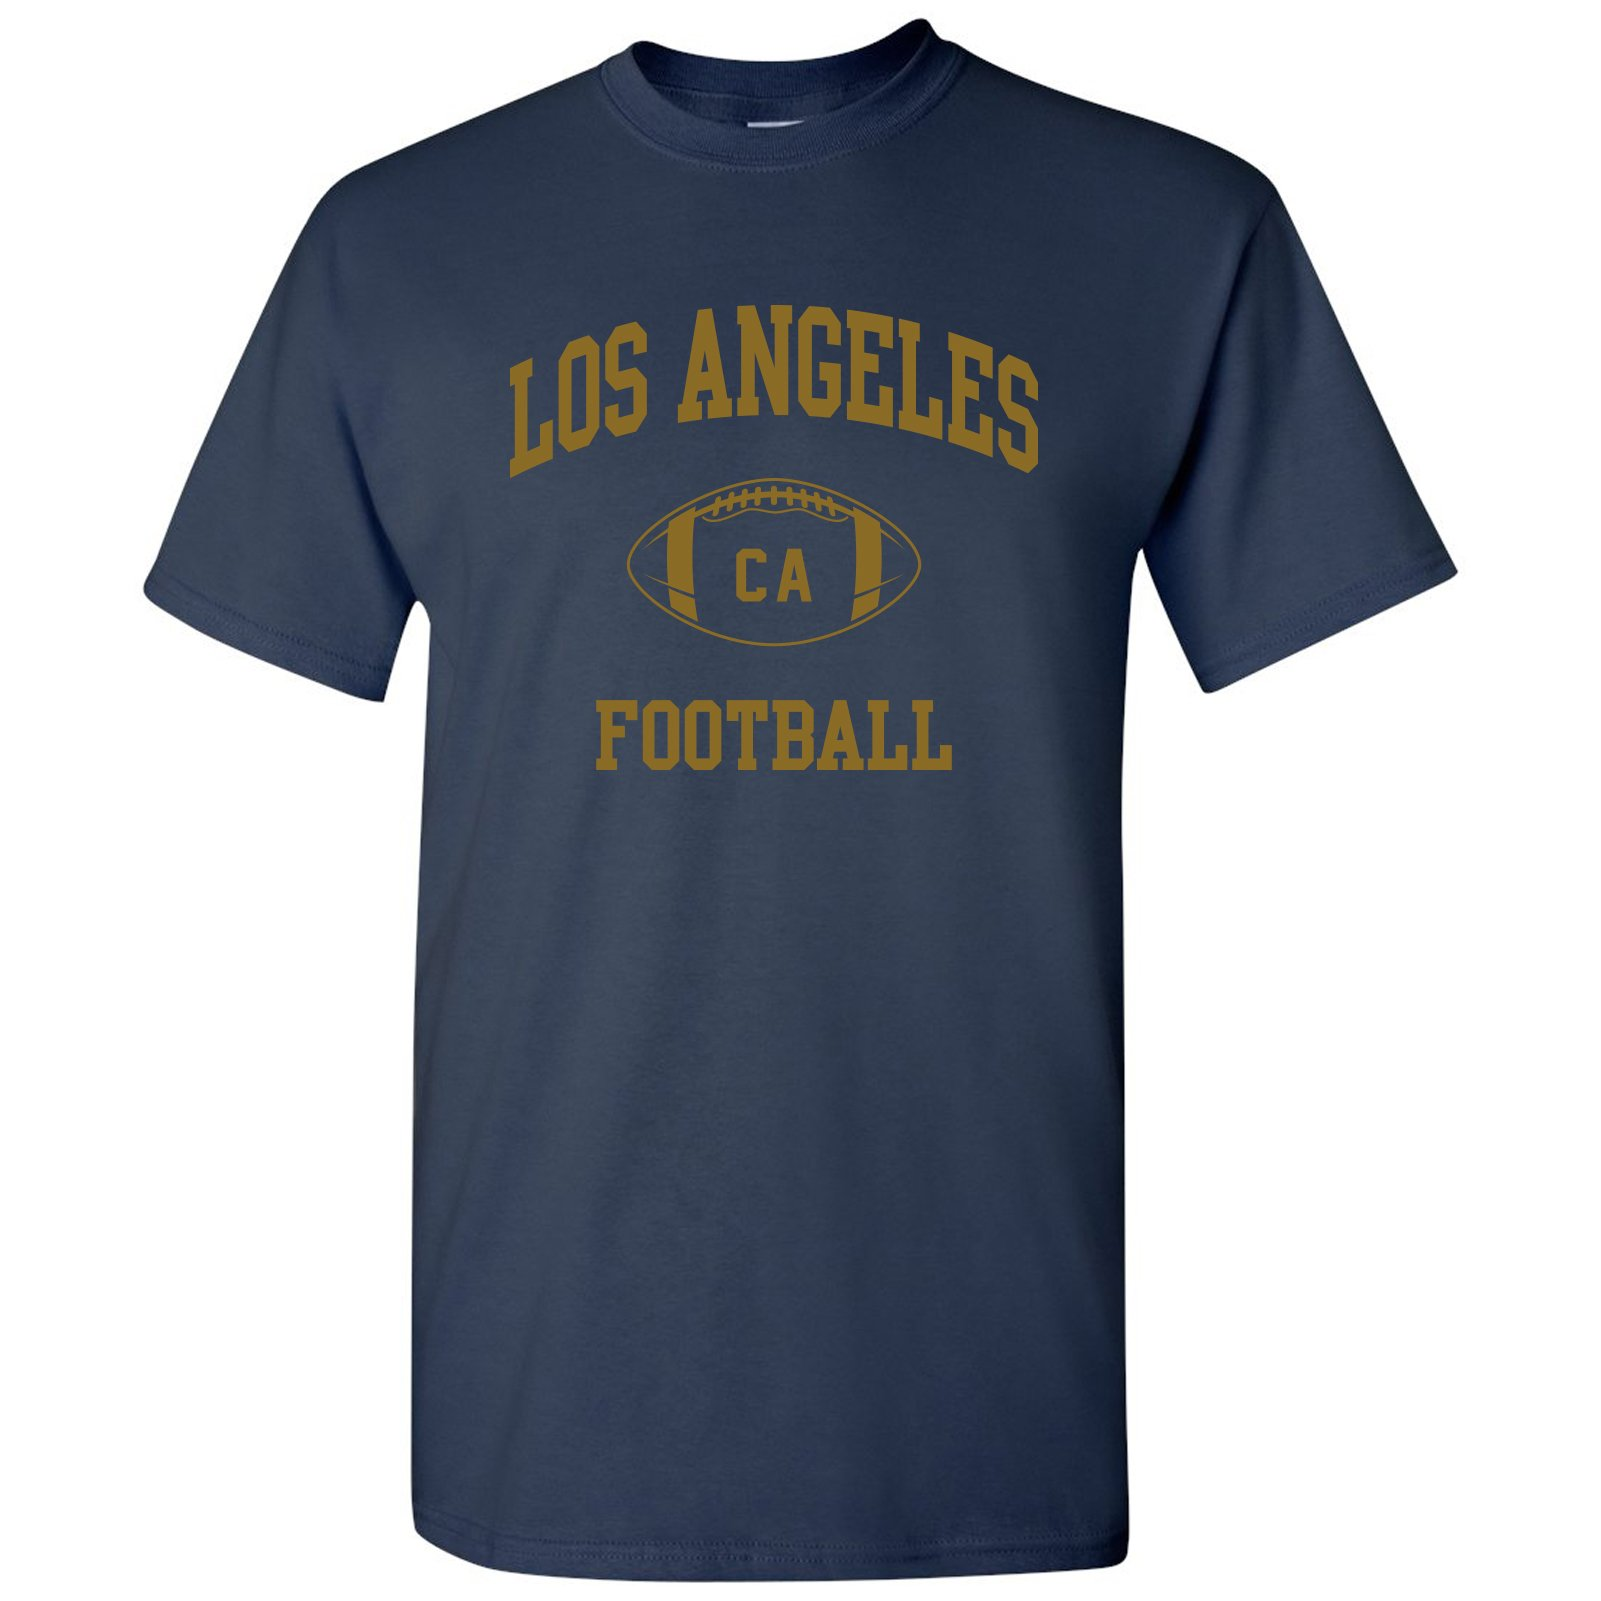 Los Angeles Classic Football Arch Basic Cotton T-Shirt - Medium - Navy/Old Gold